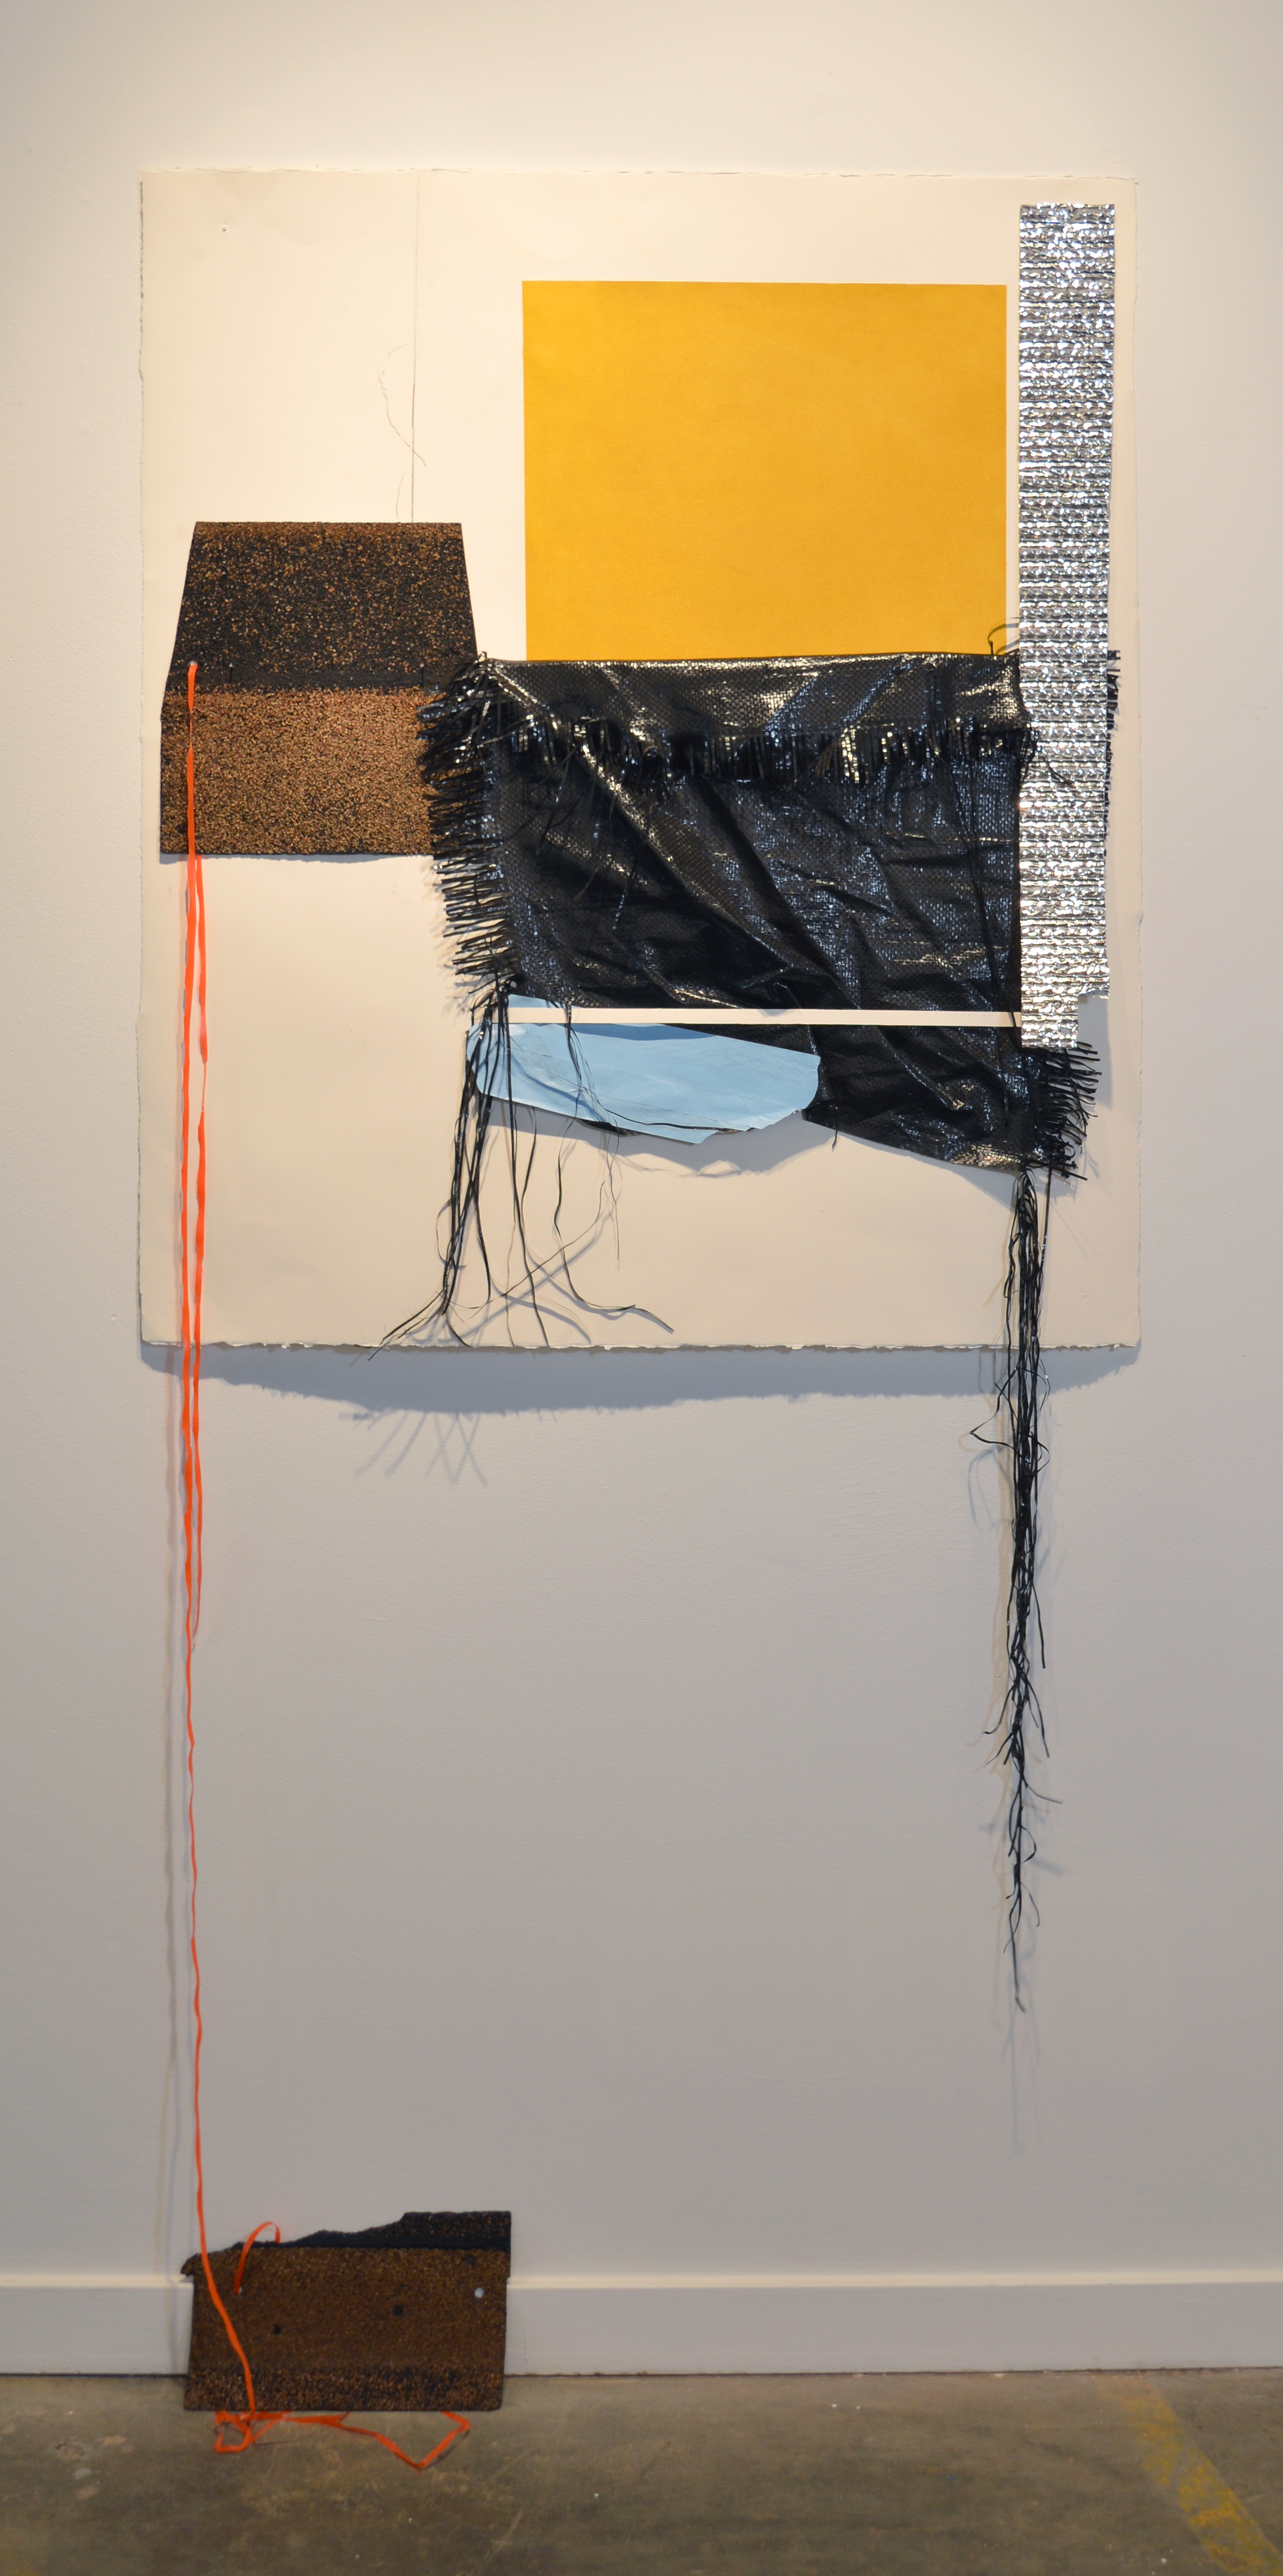 Krista Clark   Block by Block,  2018  Paper, insulation, tape, roofing, graphite, construction fencing, tarp, and pastel  52H x 36W inches